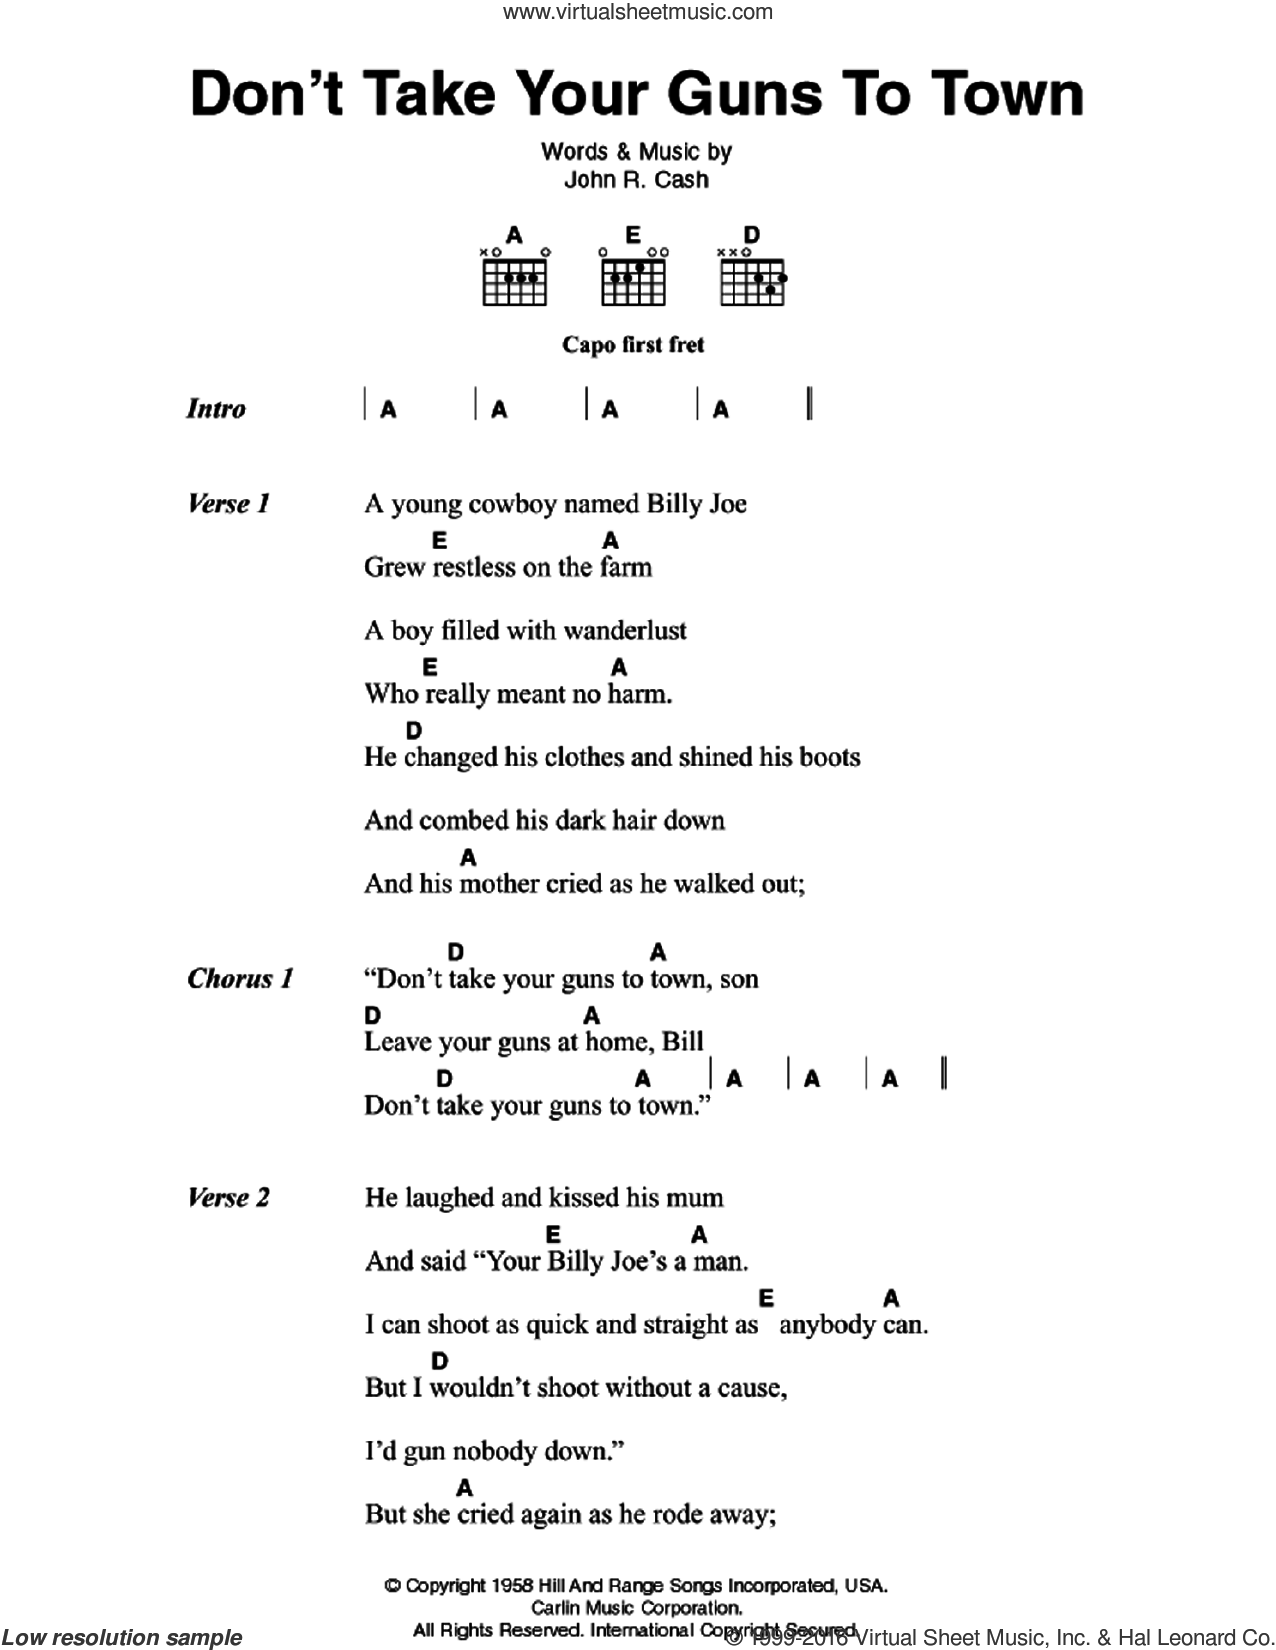 Don't Take Your Guns To Town sheet music for guitar (chords) by Johnny Cash, intermediate skill level